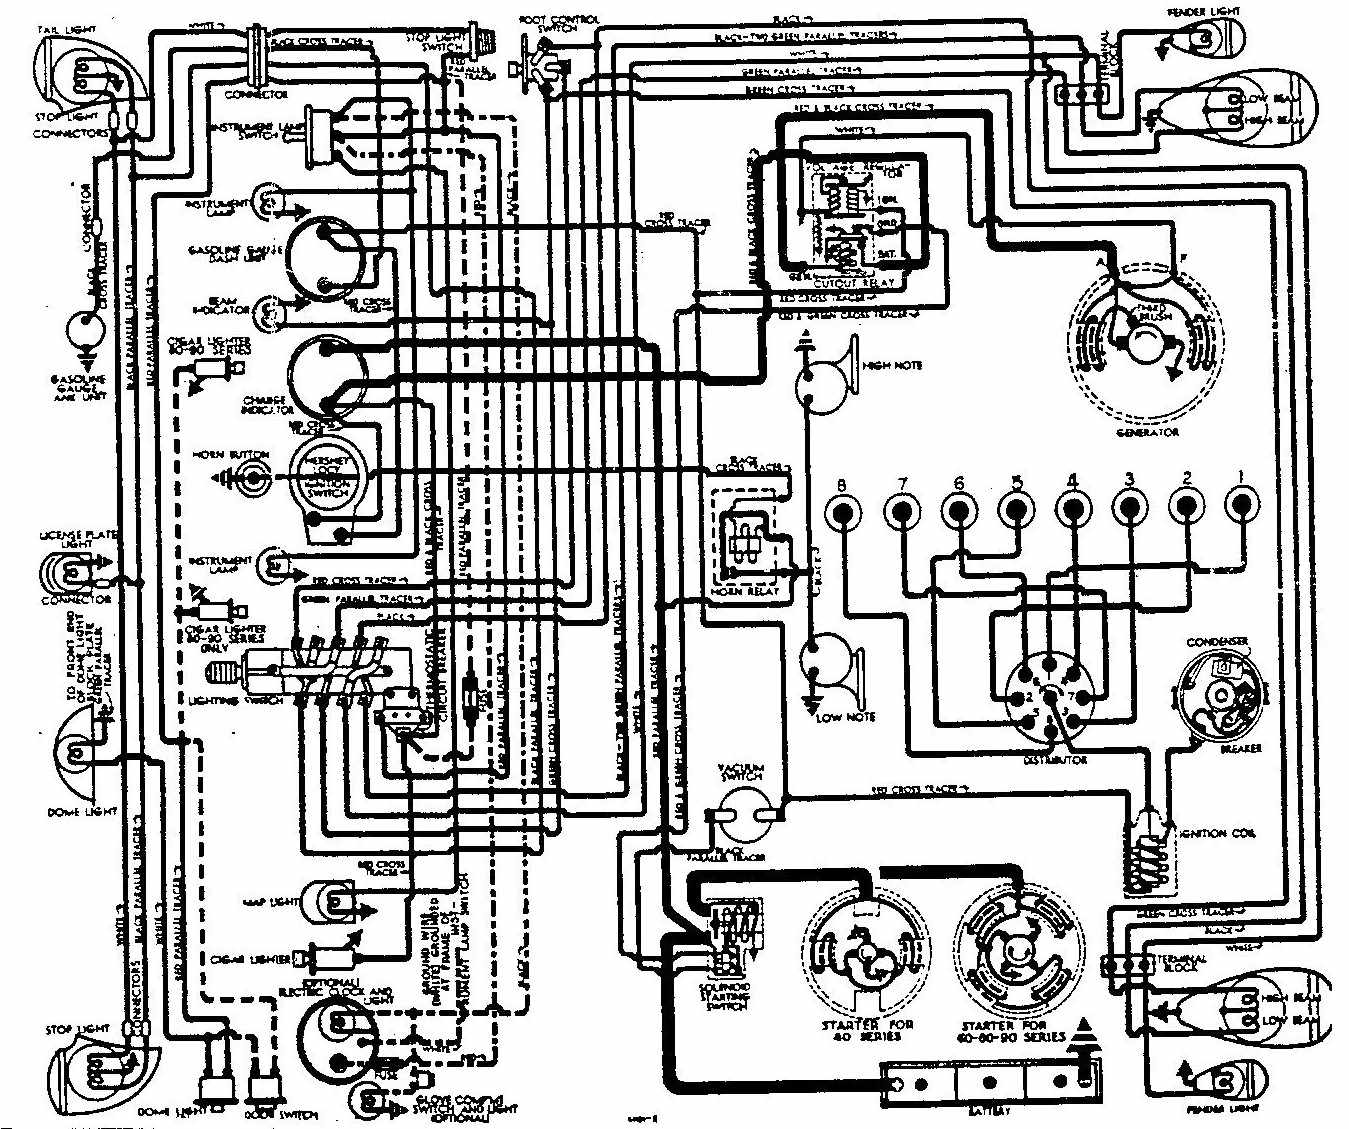 1938 buick wiring diagram wiring diagram1938 buick wiring diagram [ 1349 x 1129 Pixel ]